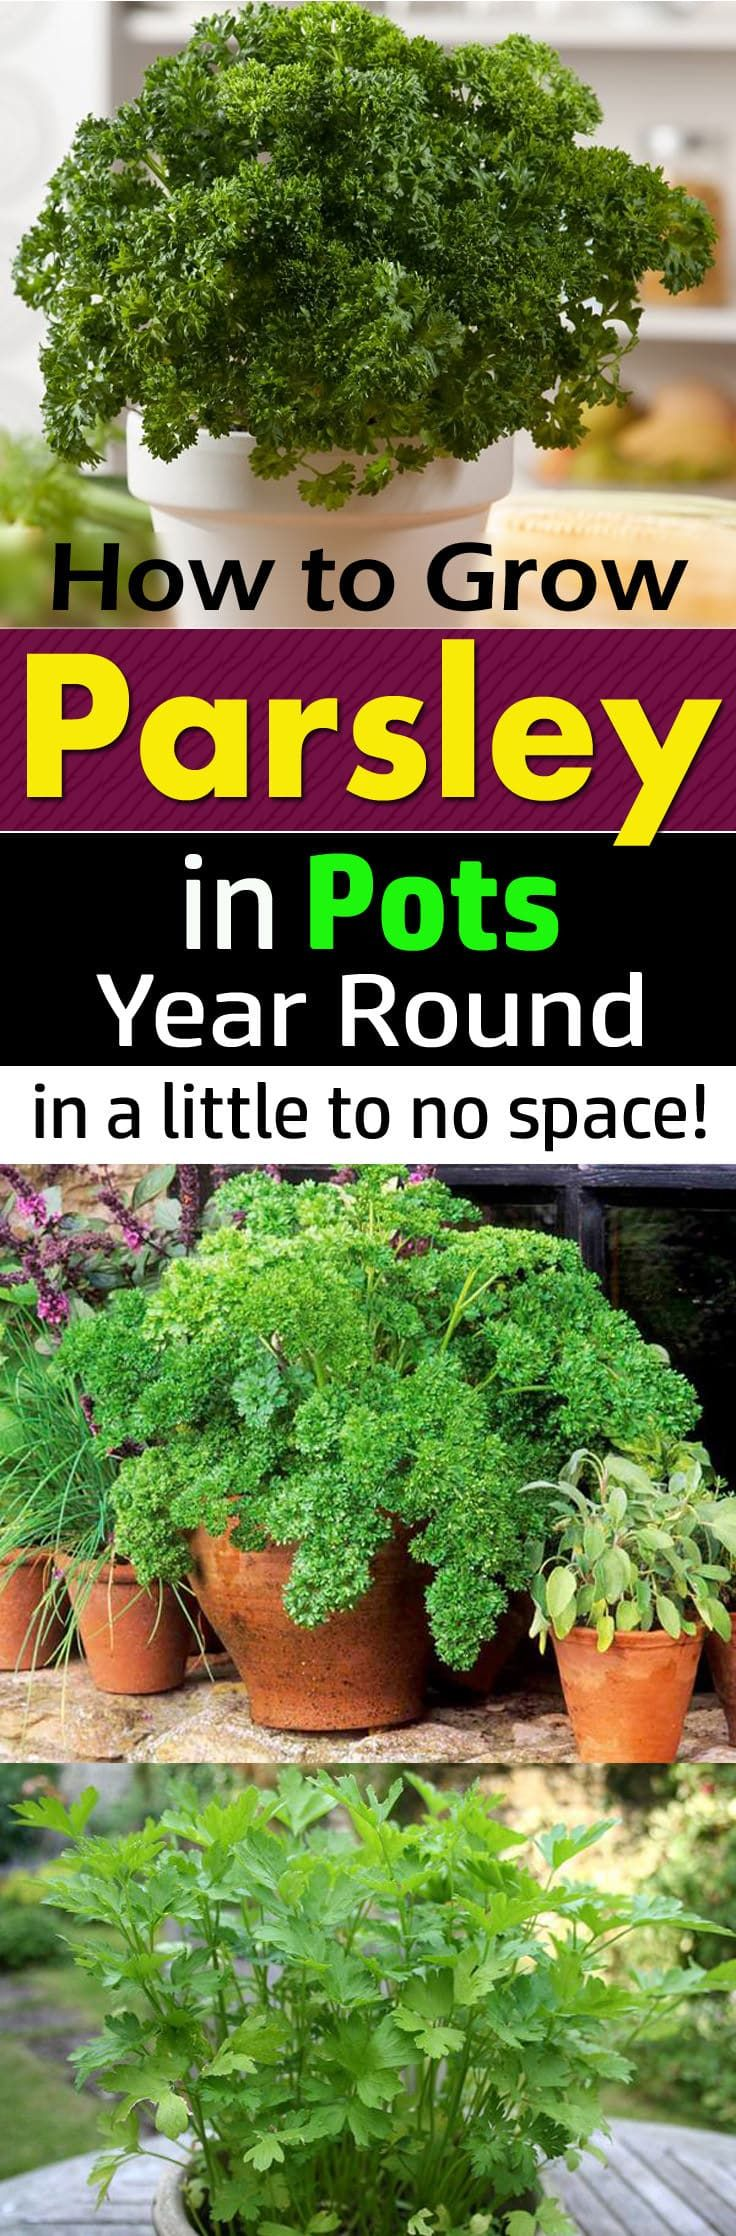 How To Grow Parsley In Pots Year Round In A Little To No Space In 2020 Growing Parsley Growing Vegetables Planting Herbs